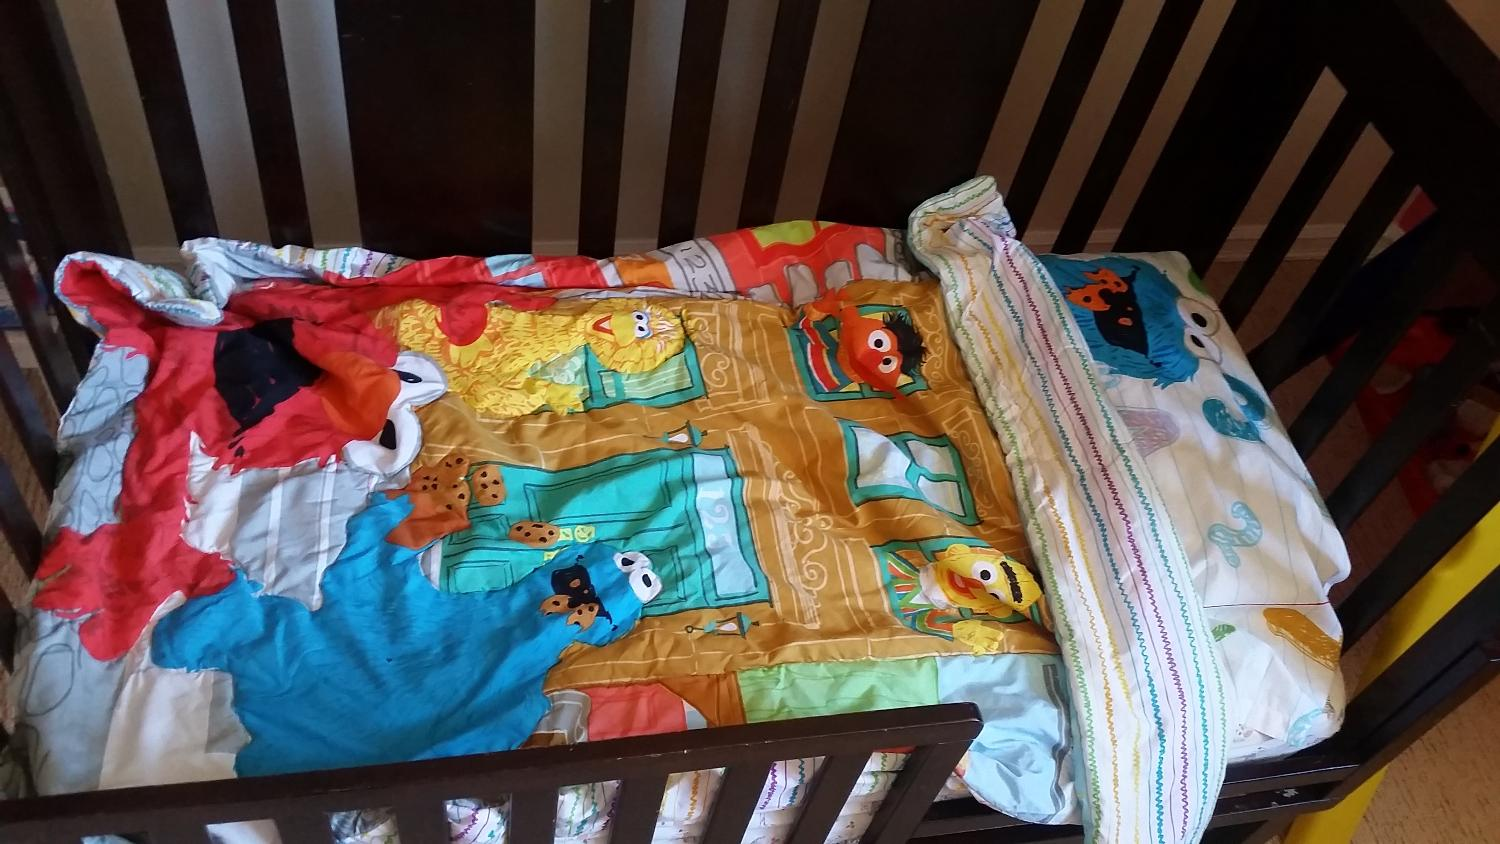 Find More Elmo Toddler Bedding For Sale At Up To 90 Off